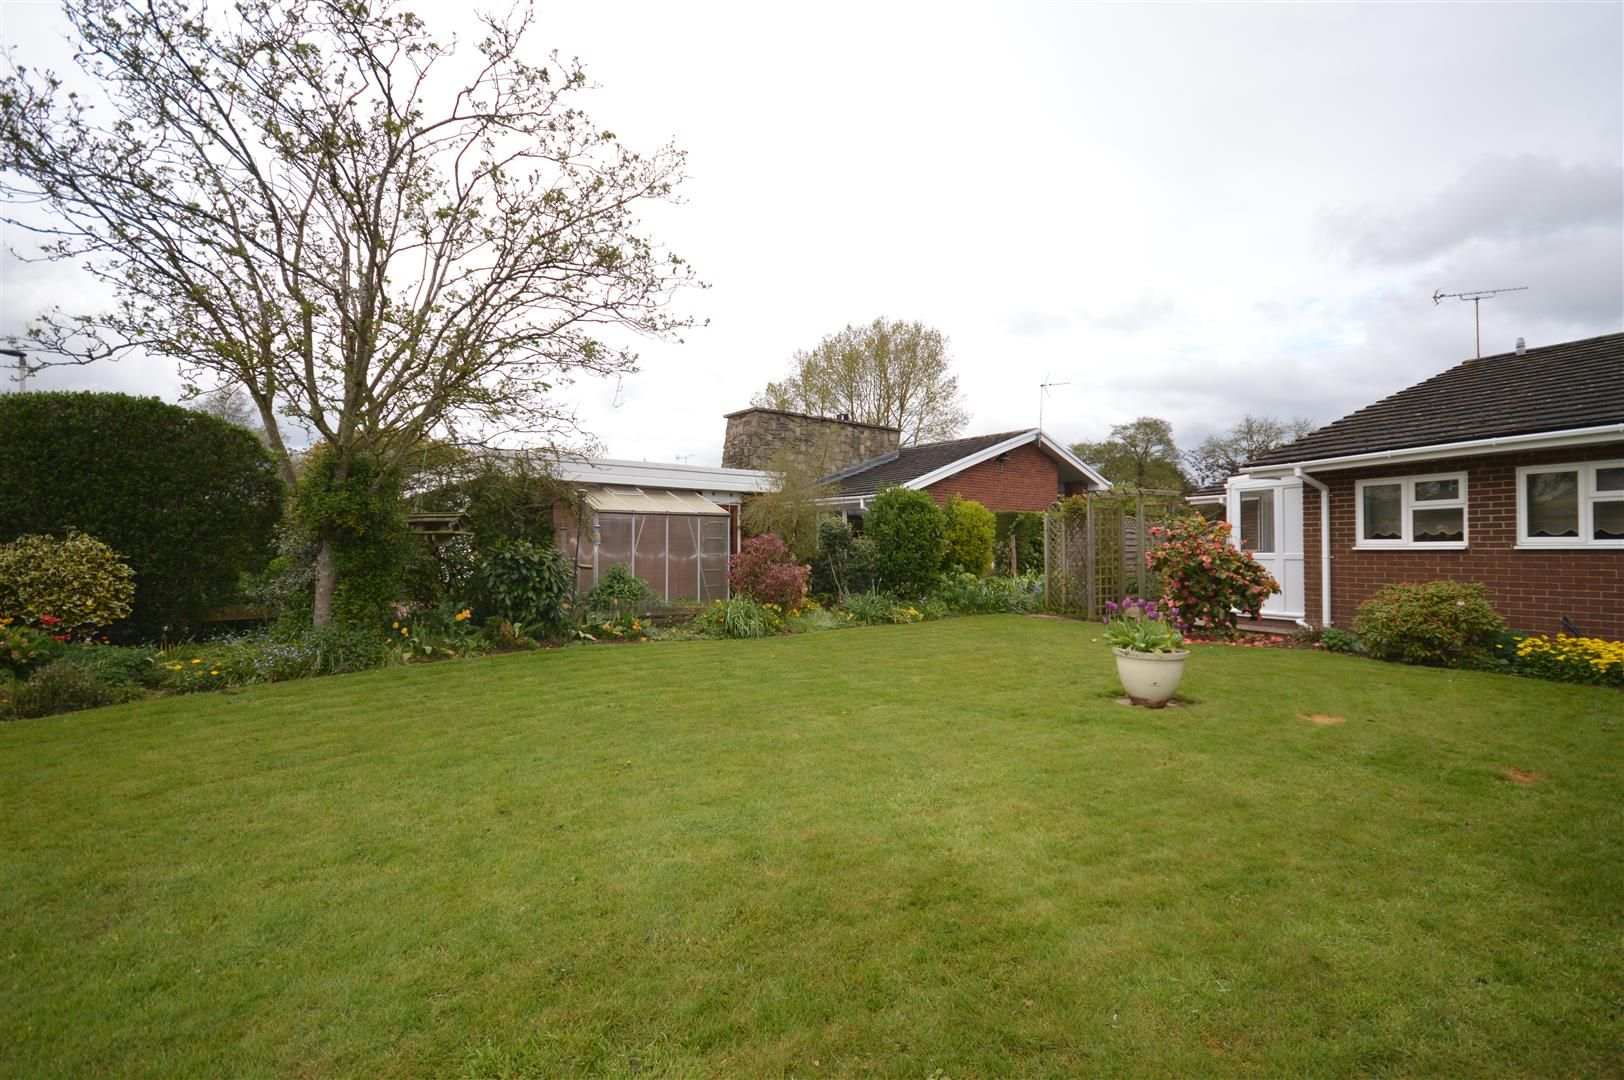 3 bed detached-bungalow for sale in Bodenham  - Property Image 6